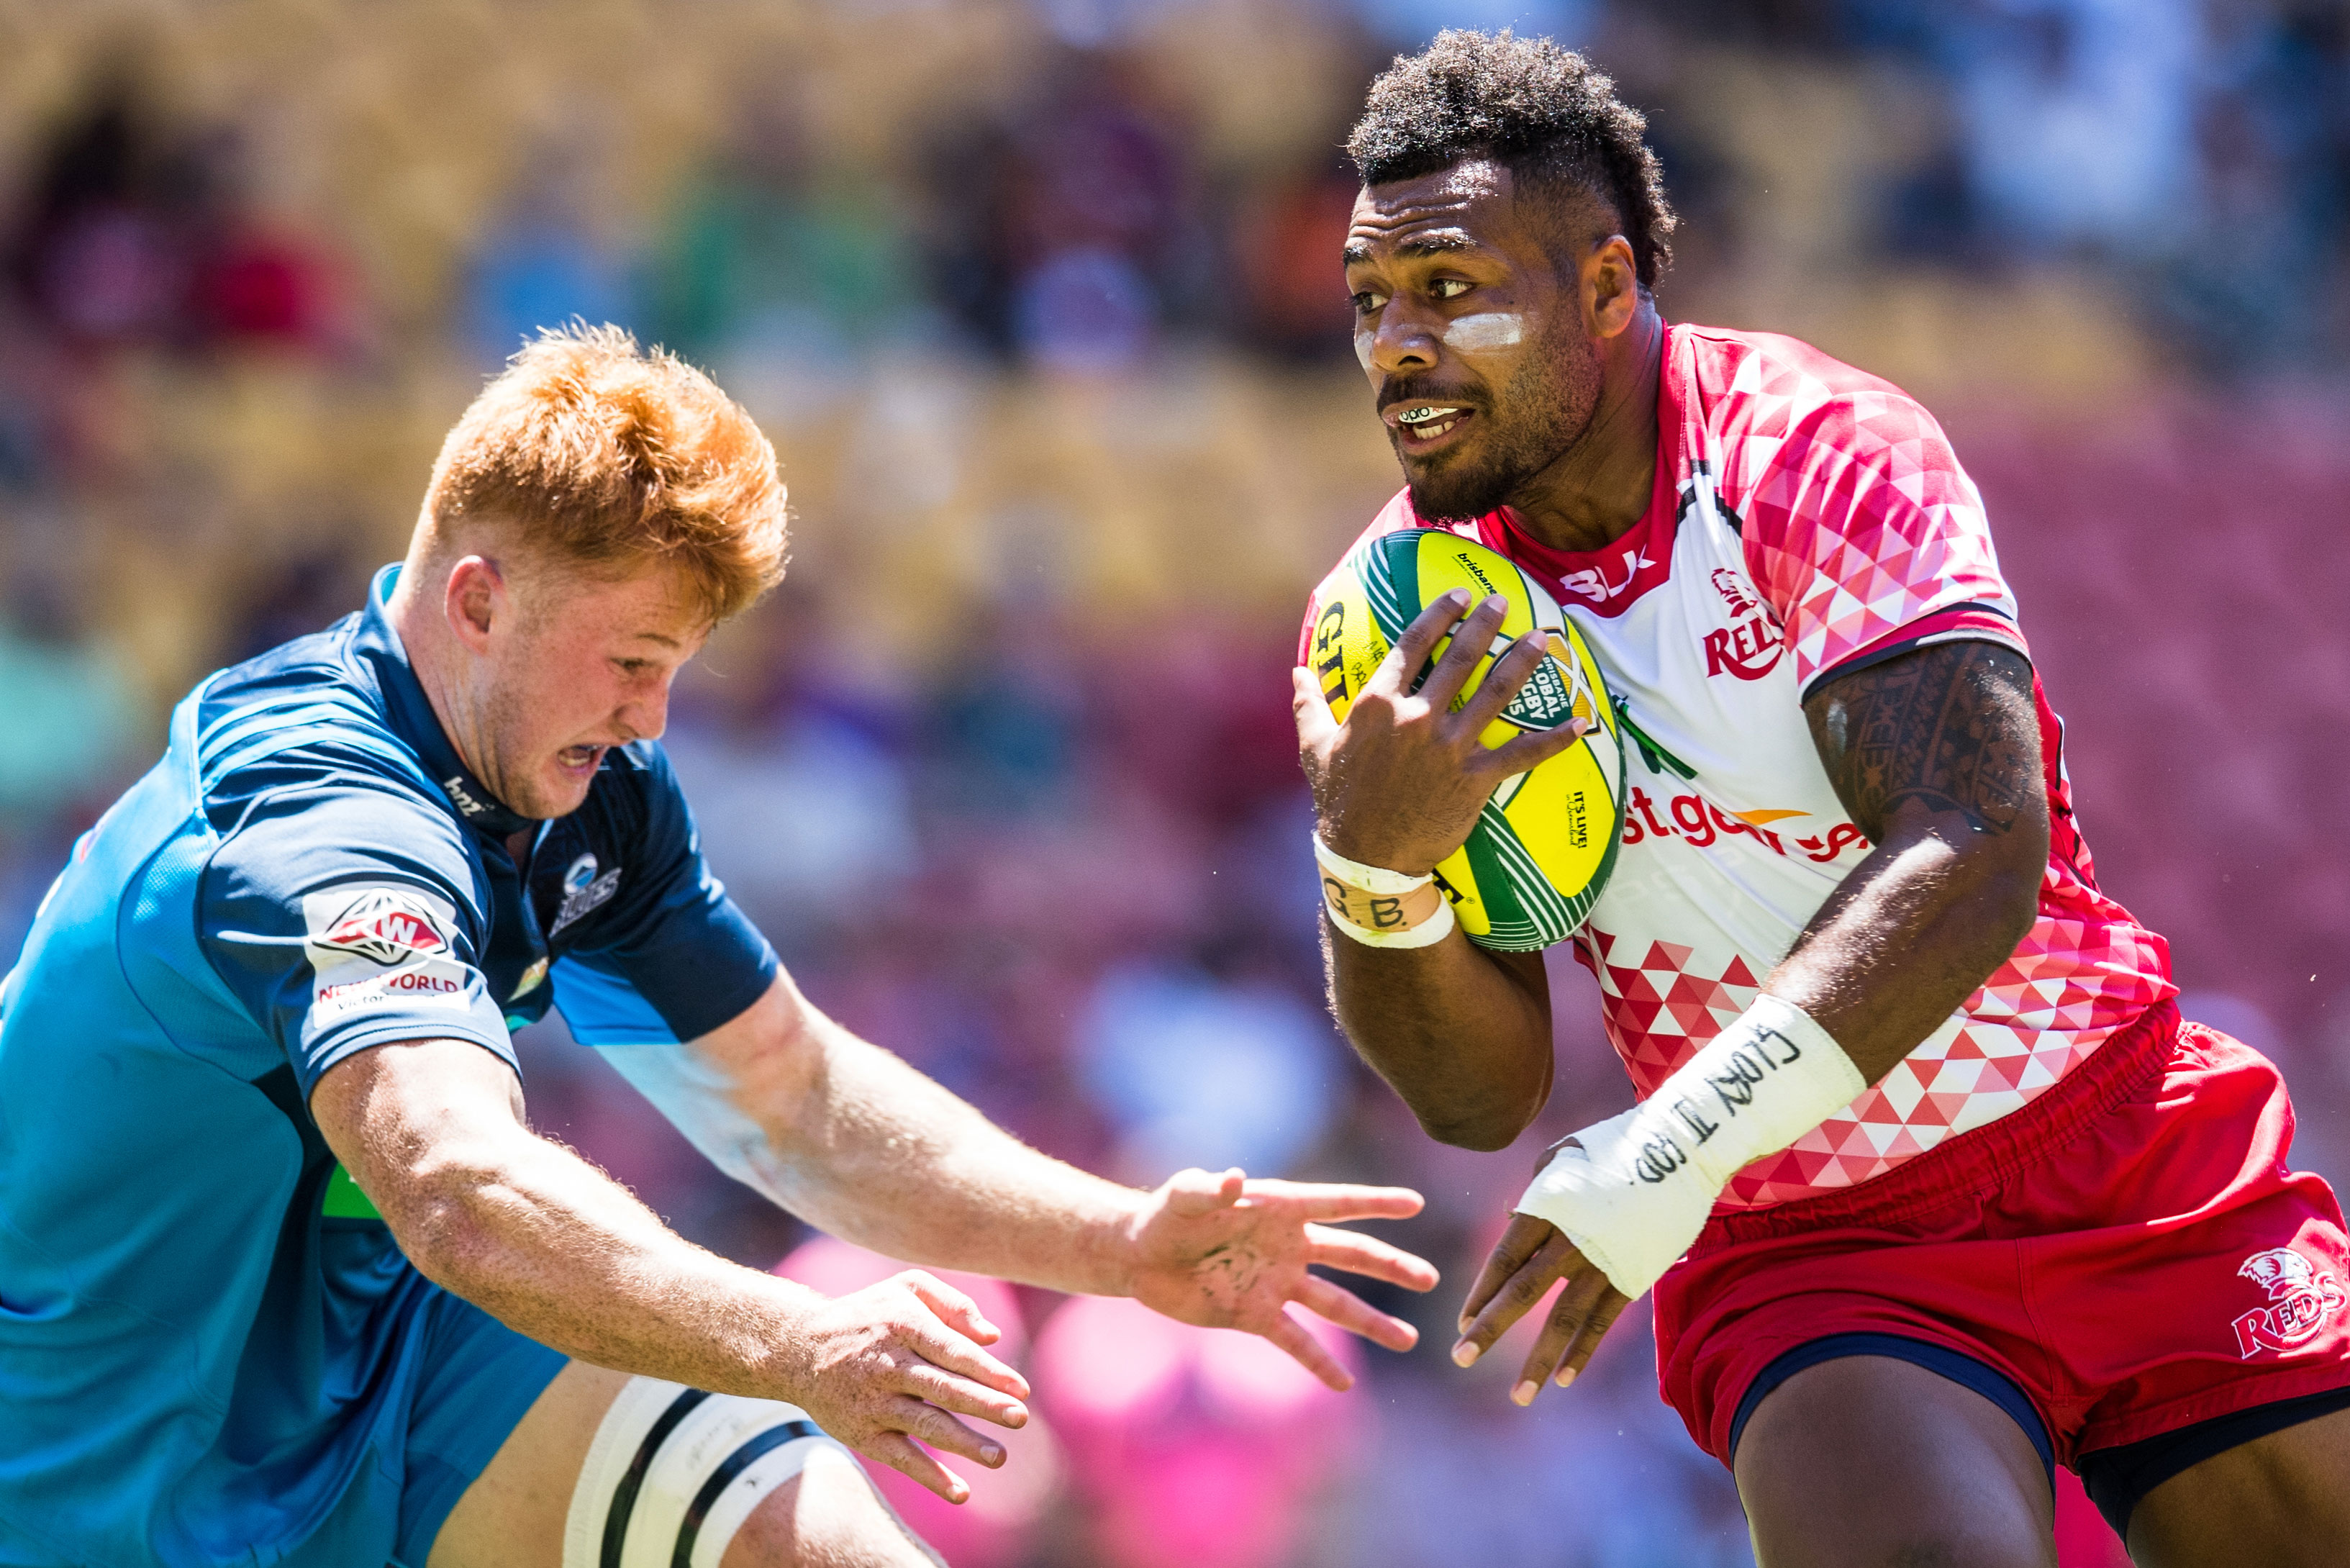 Samu Kerevi made his return from injury at the Tens. Photo: RUGBY.com.au/Stuart Walmsley